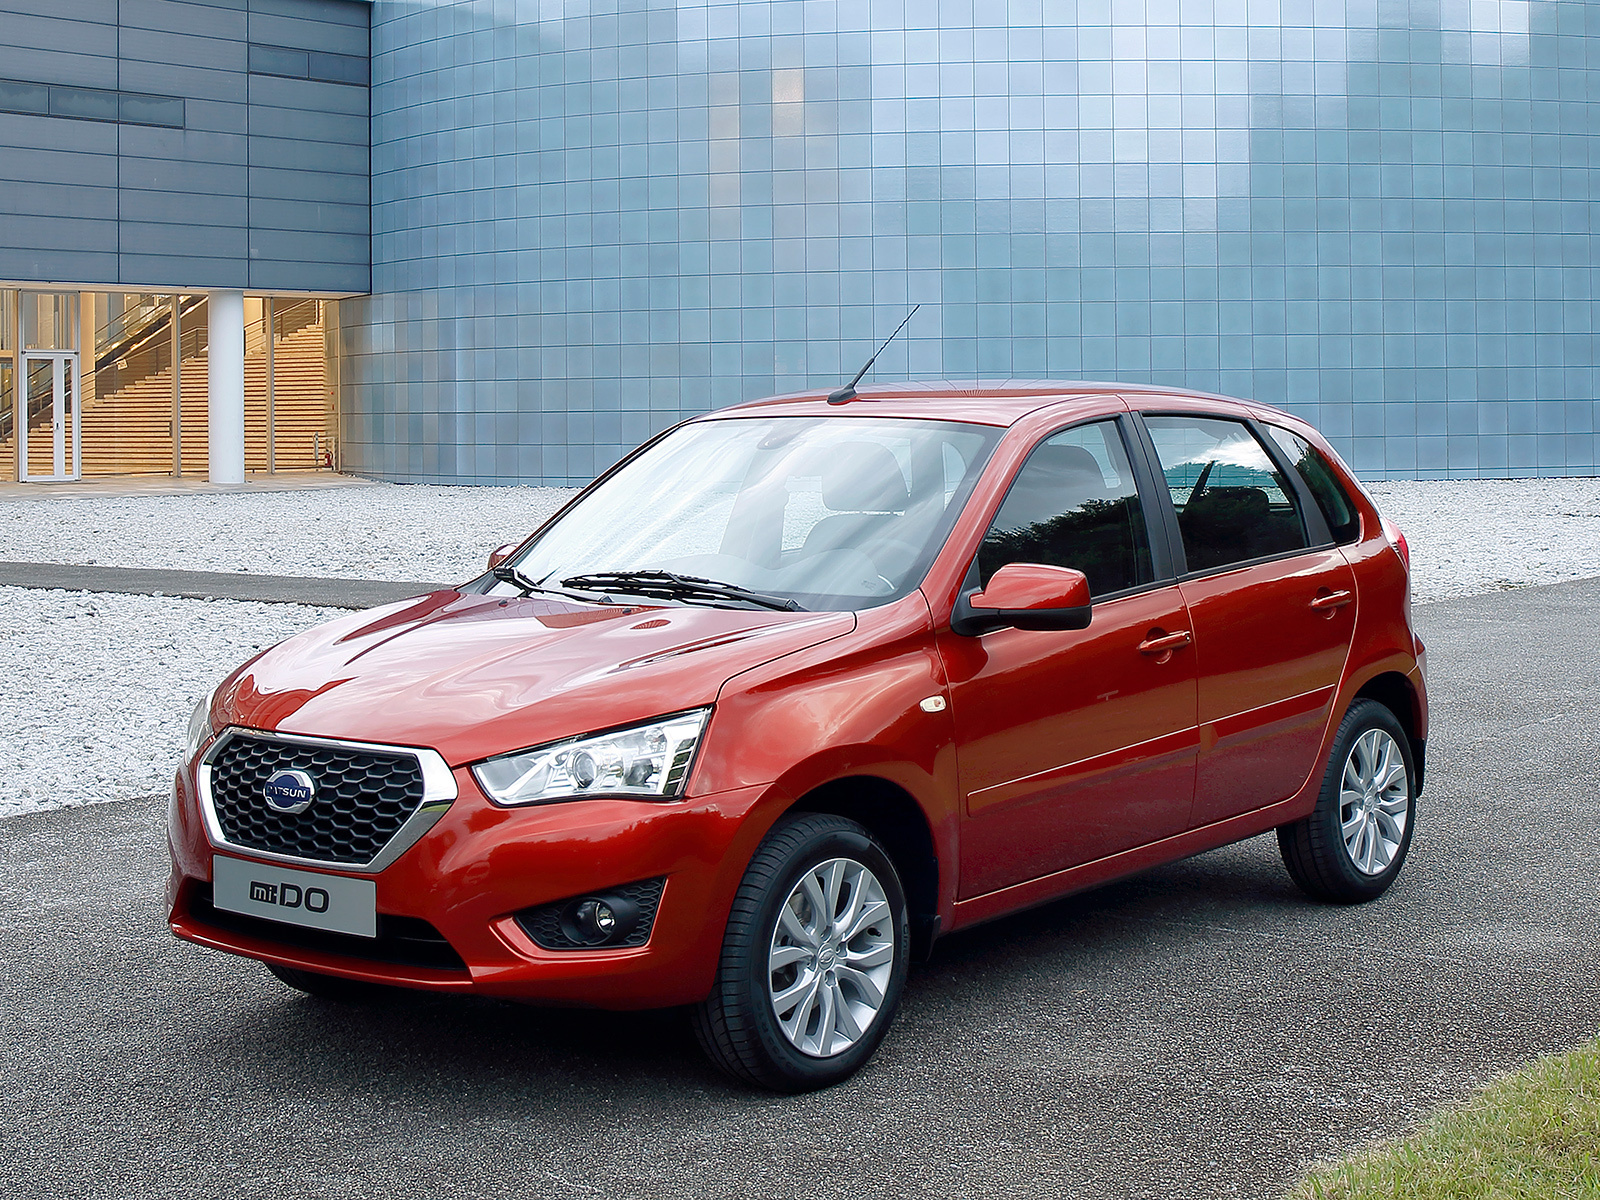 datsun dealing with low sales in emerging markets